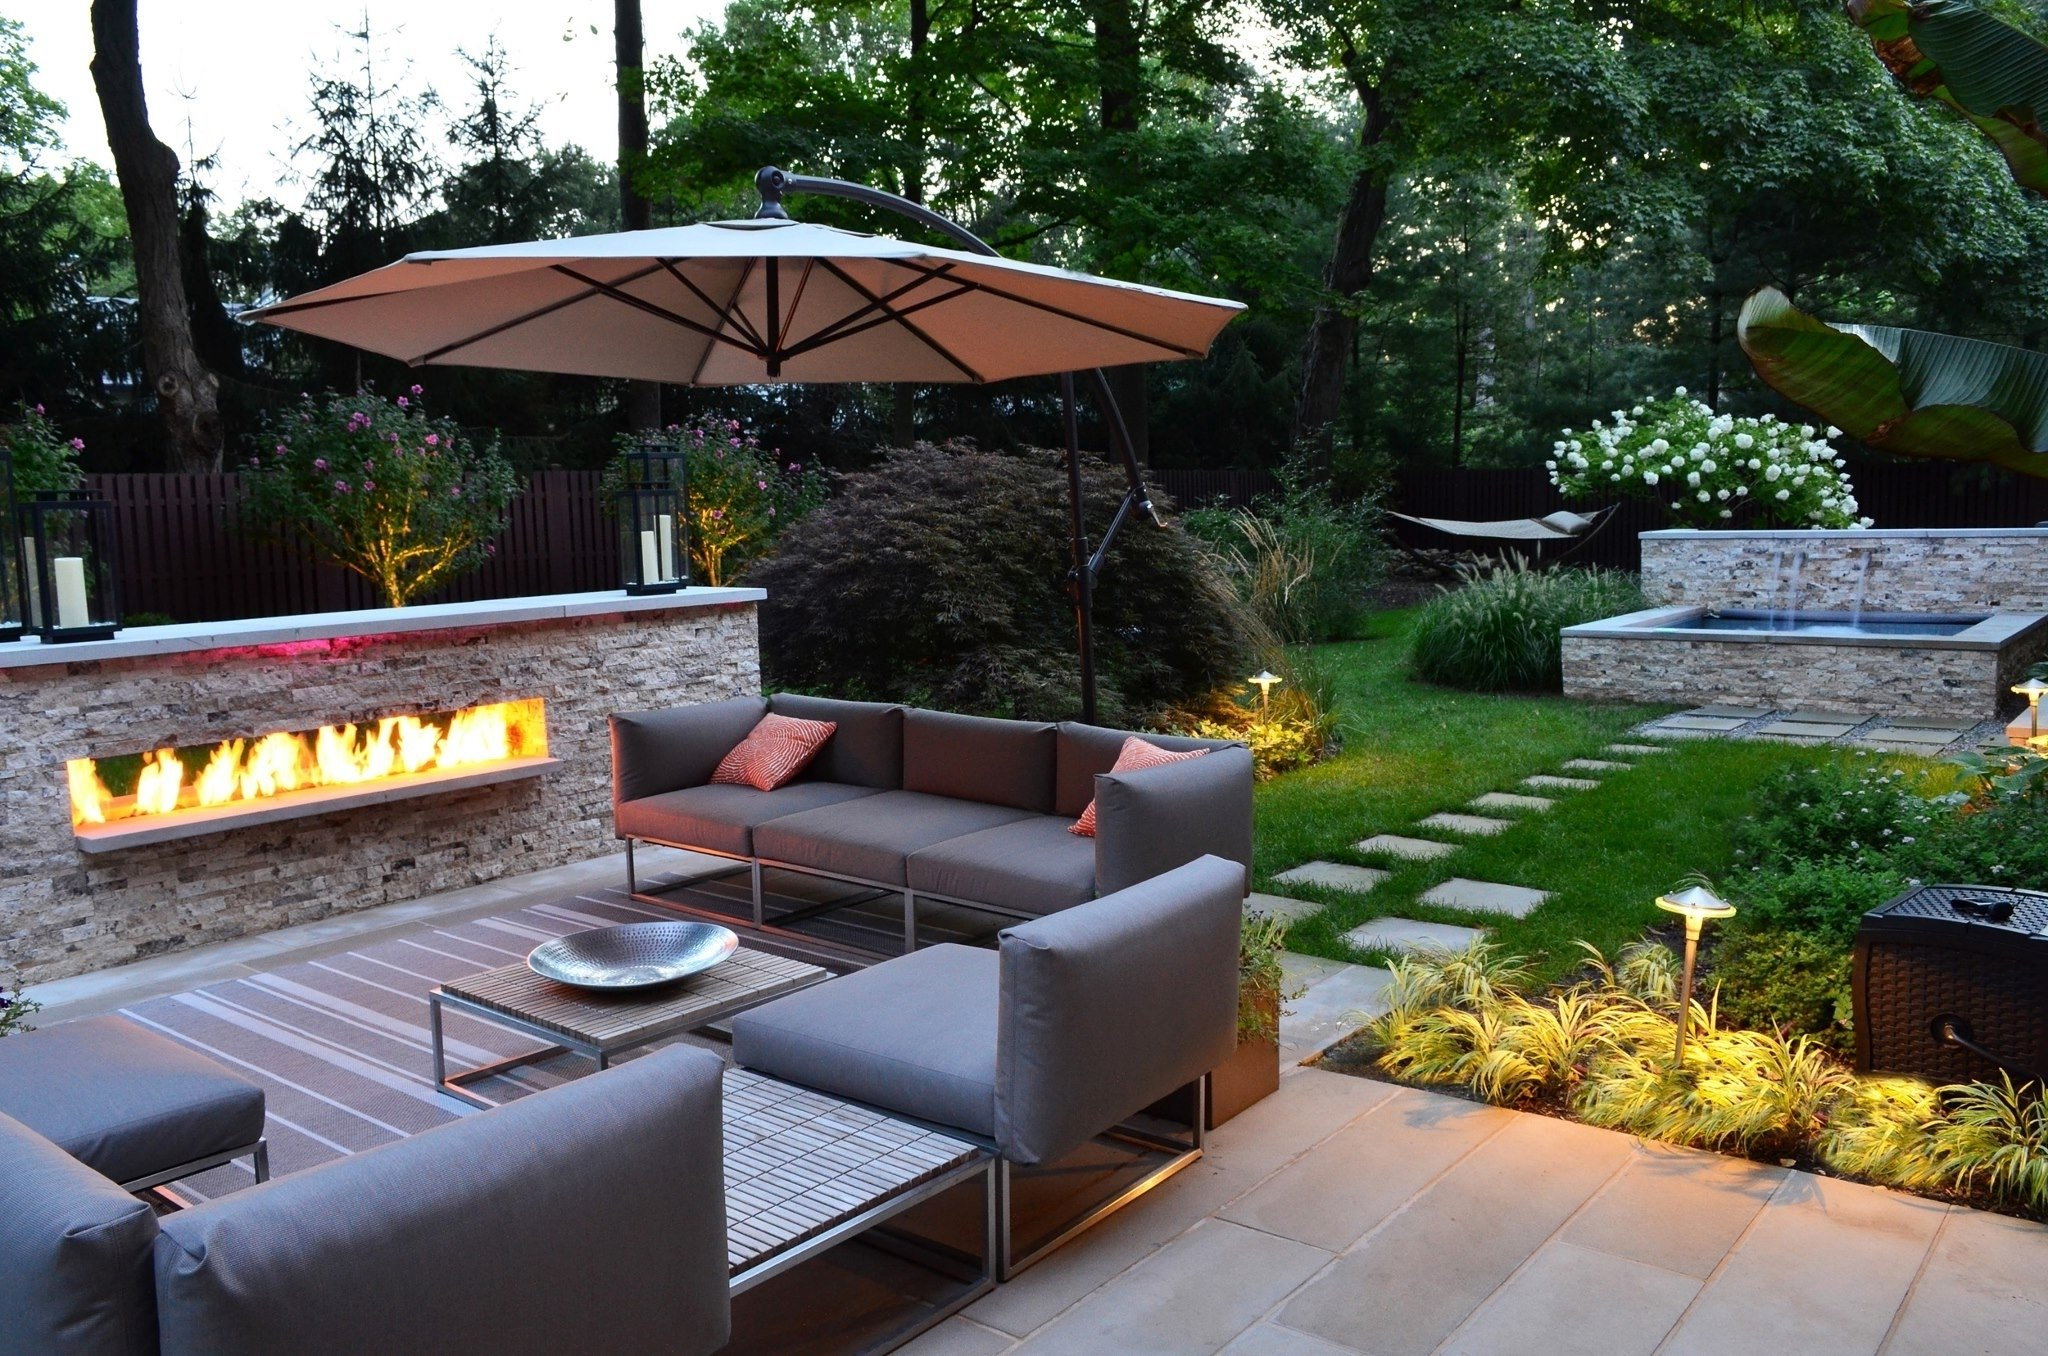 10 Awesome Backyard Ideas For Small Yards small yard design ideas internetunblock internetunblock from small 2020